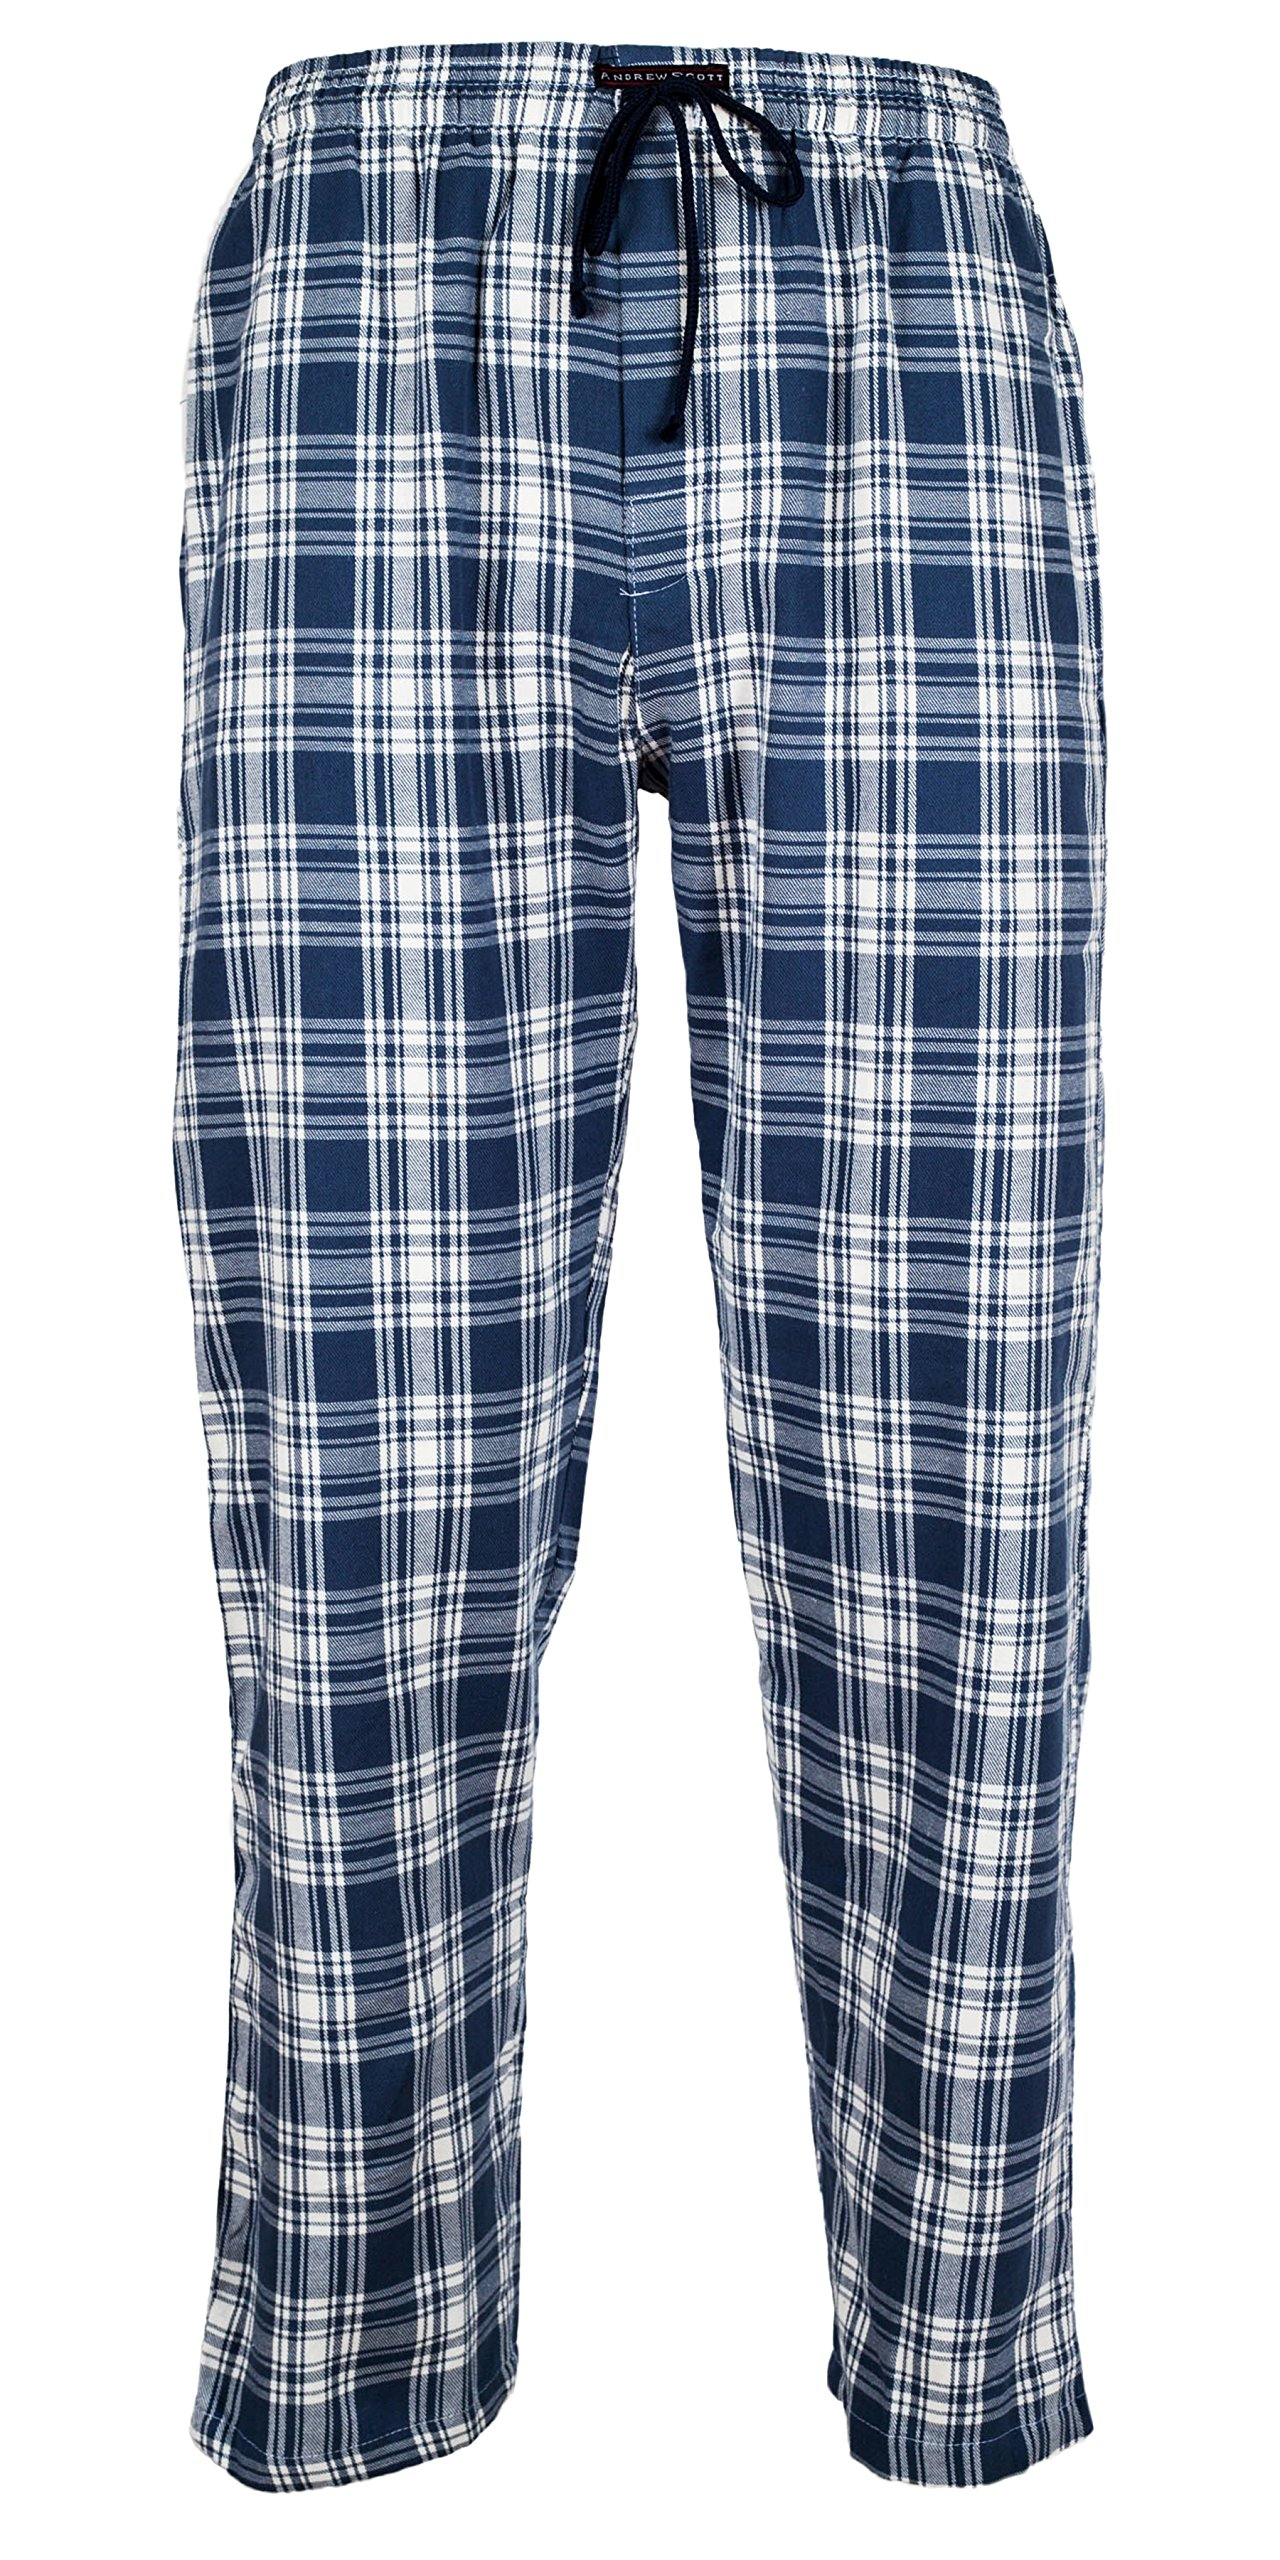 Andrew Scott Men's 3 Pack Cotton Flannel Fleece Brush Pajama Sleep & Lounge Pants (XL/40-42, 3 Pack - Classic Flannel Assorted Plaids) by Andrew Scott (Image #6)